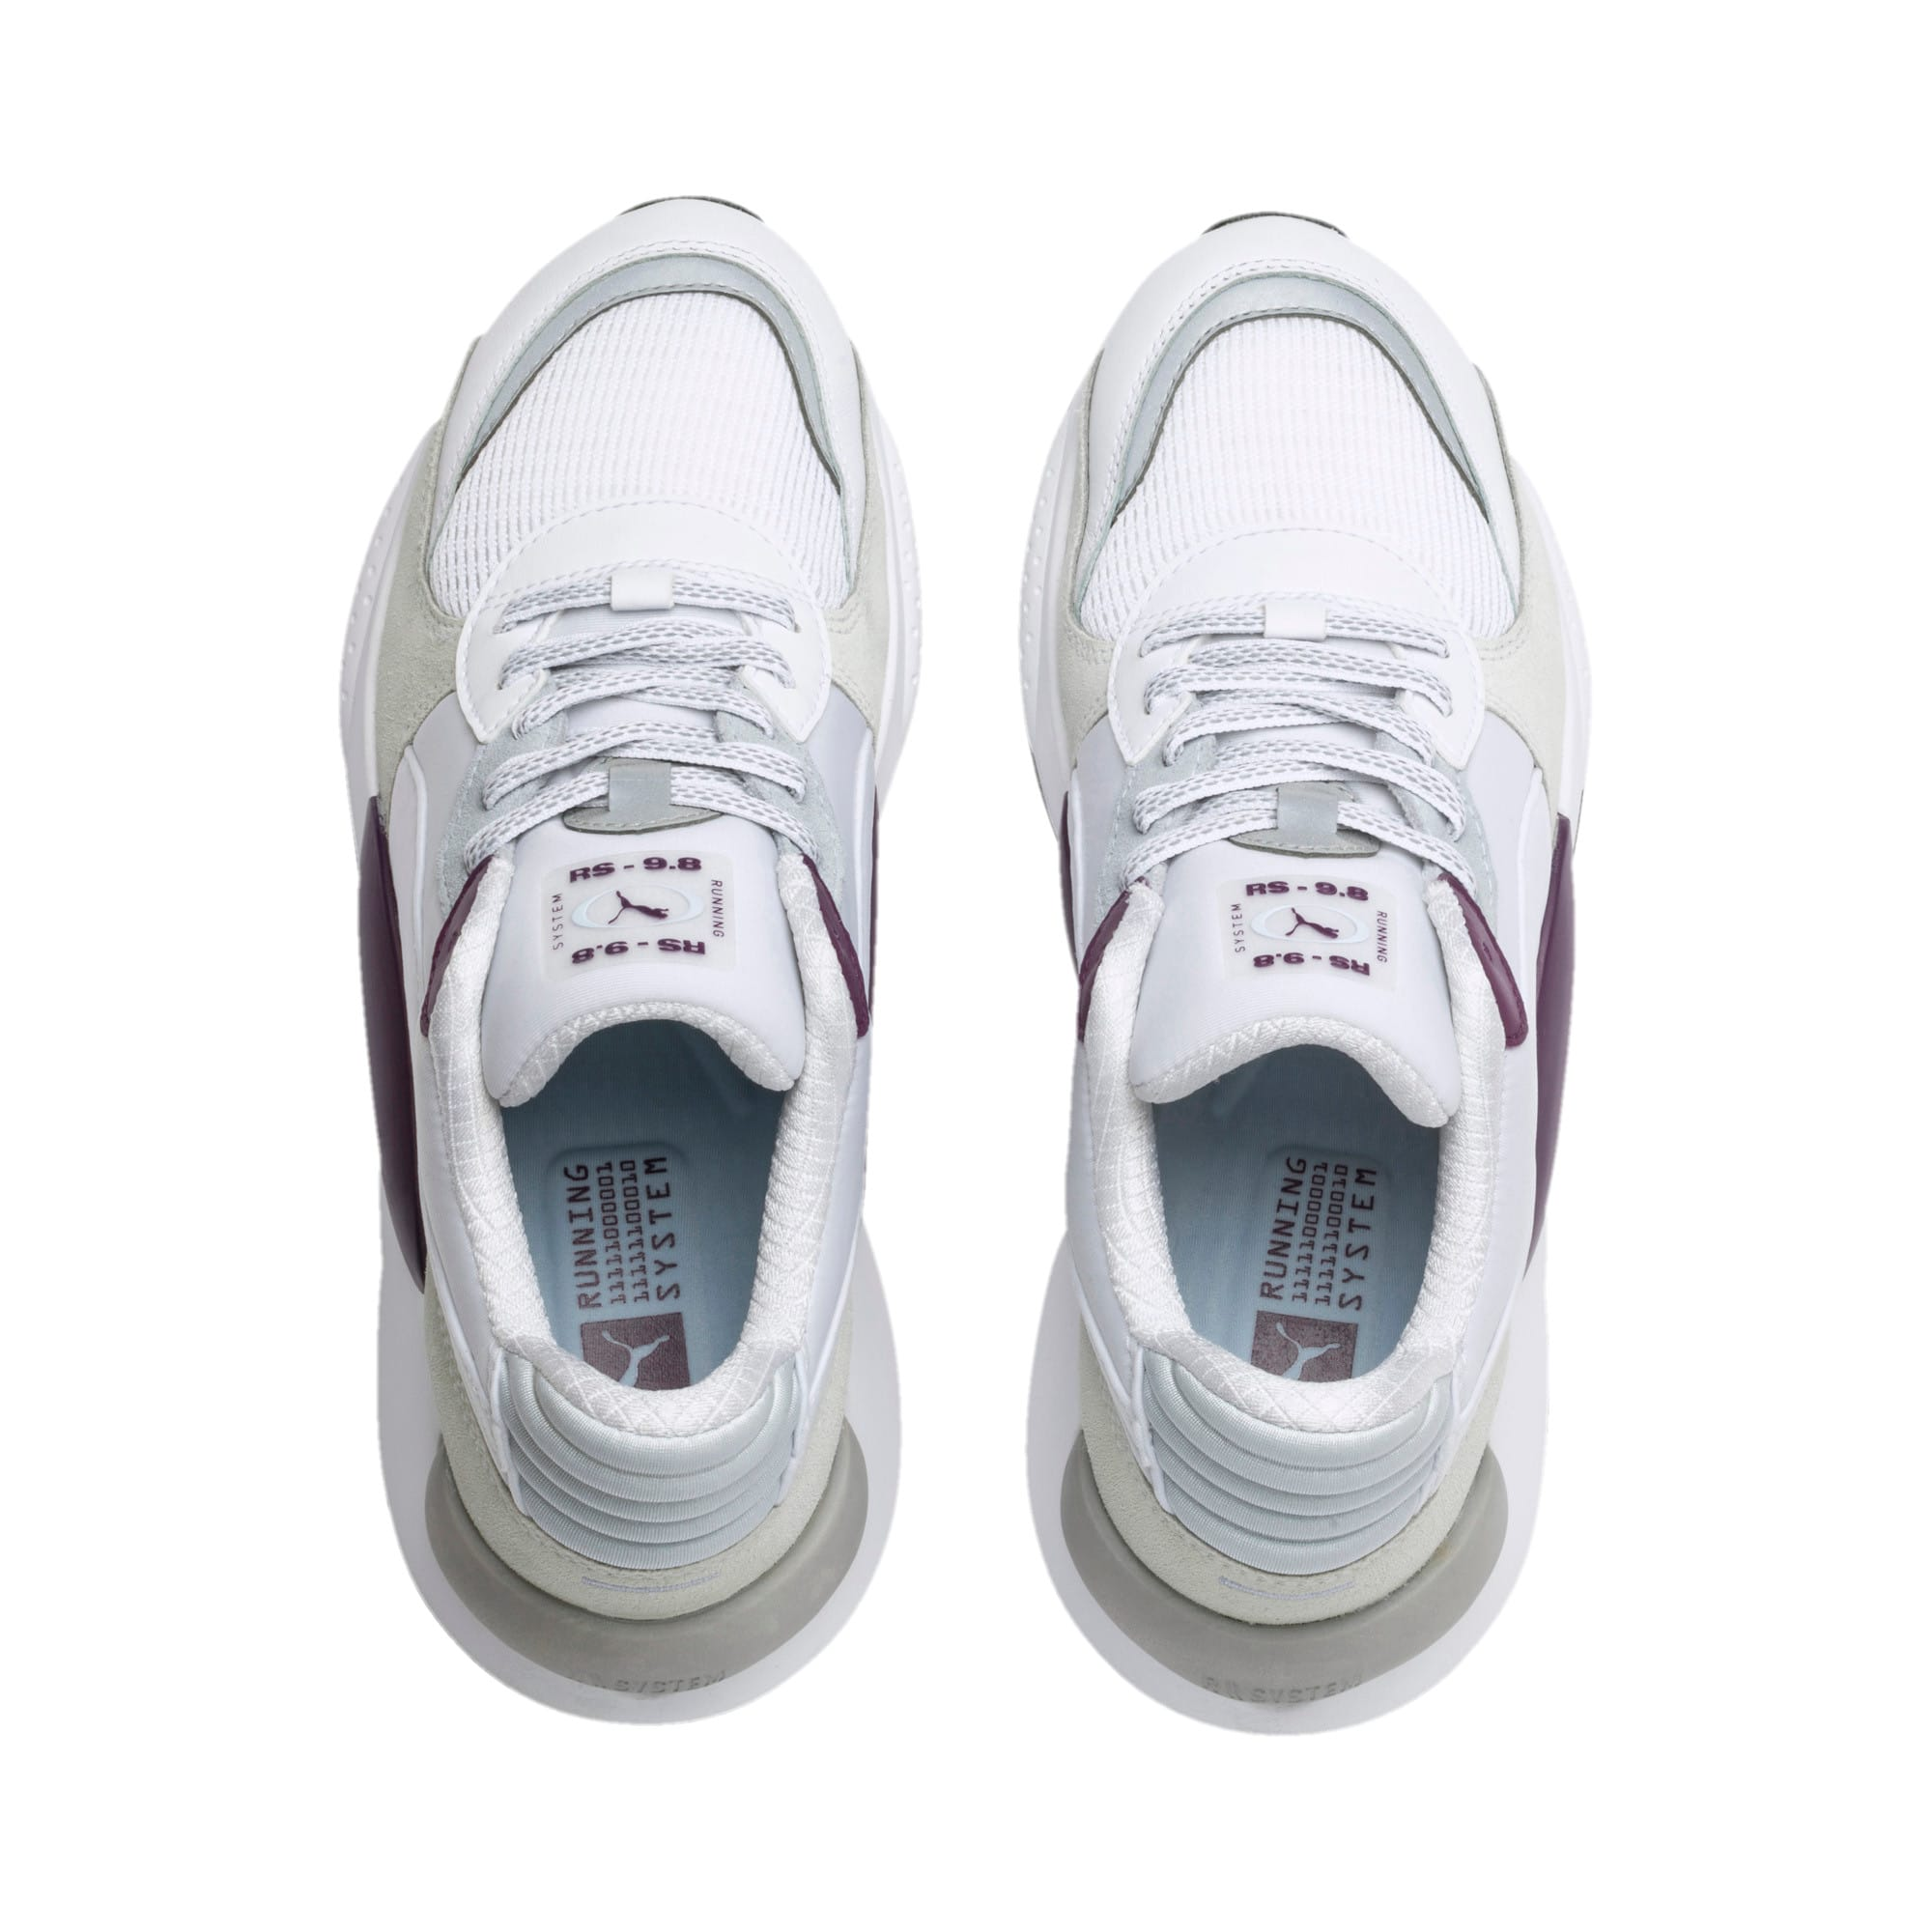 Thumbnail 7 of RS 9.8 Gravity Sneaker, Puma White-Plum Purple, medium